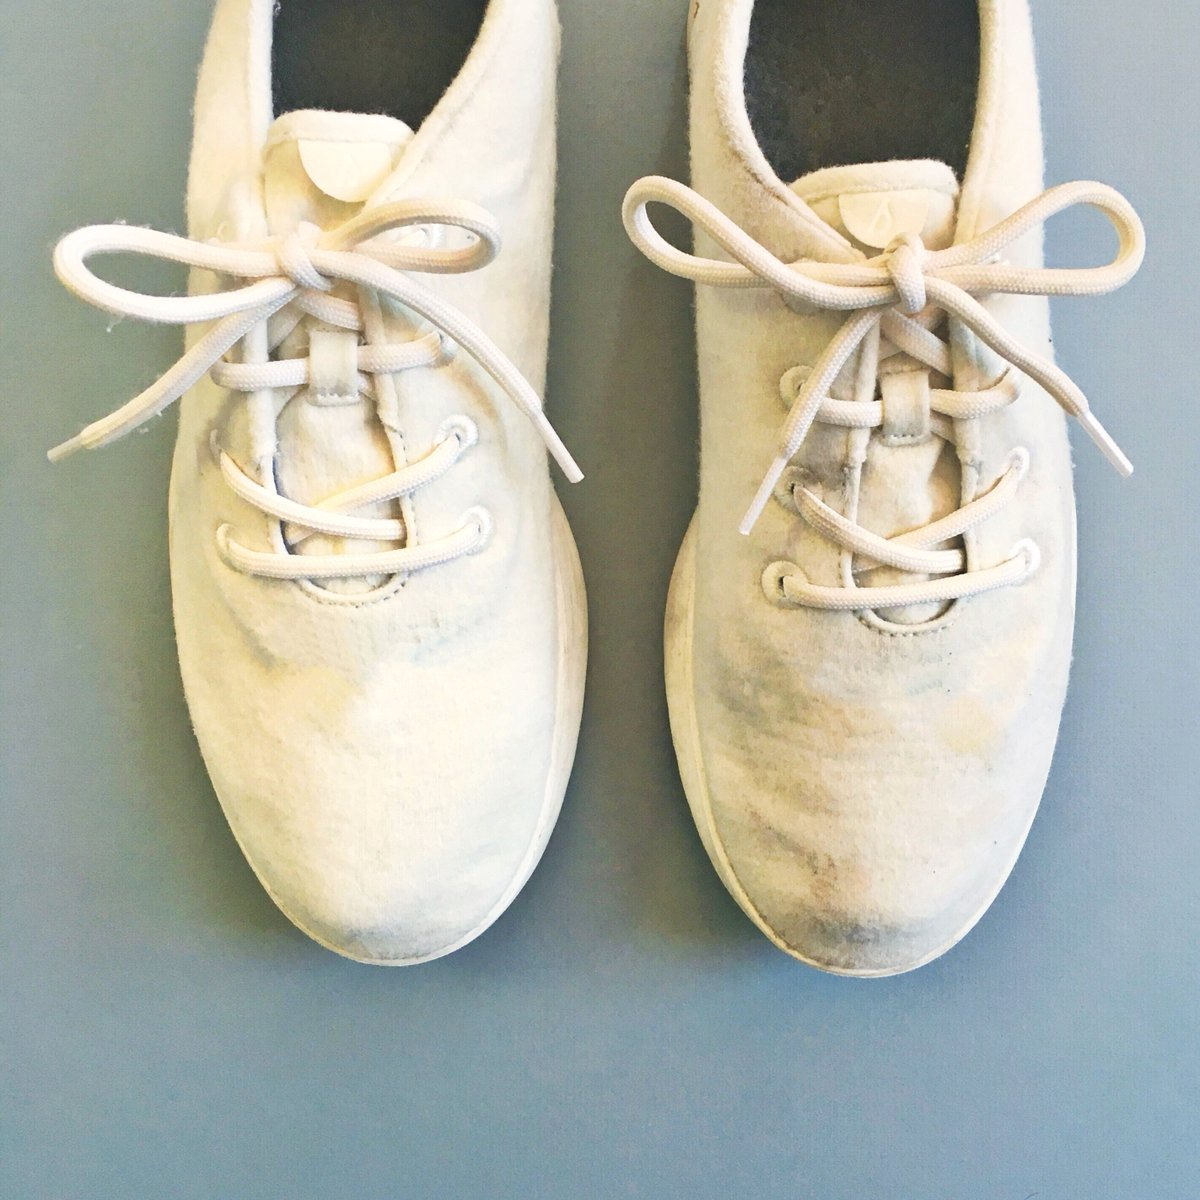 keeping white shoes clean is tough